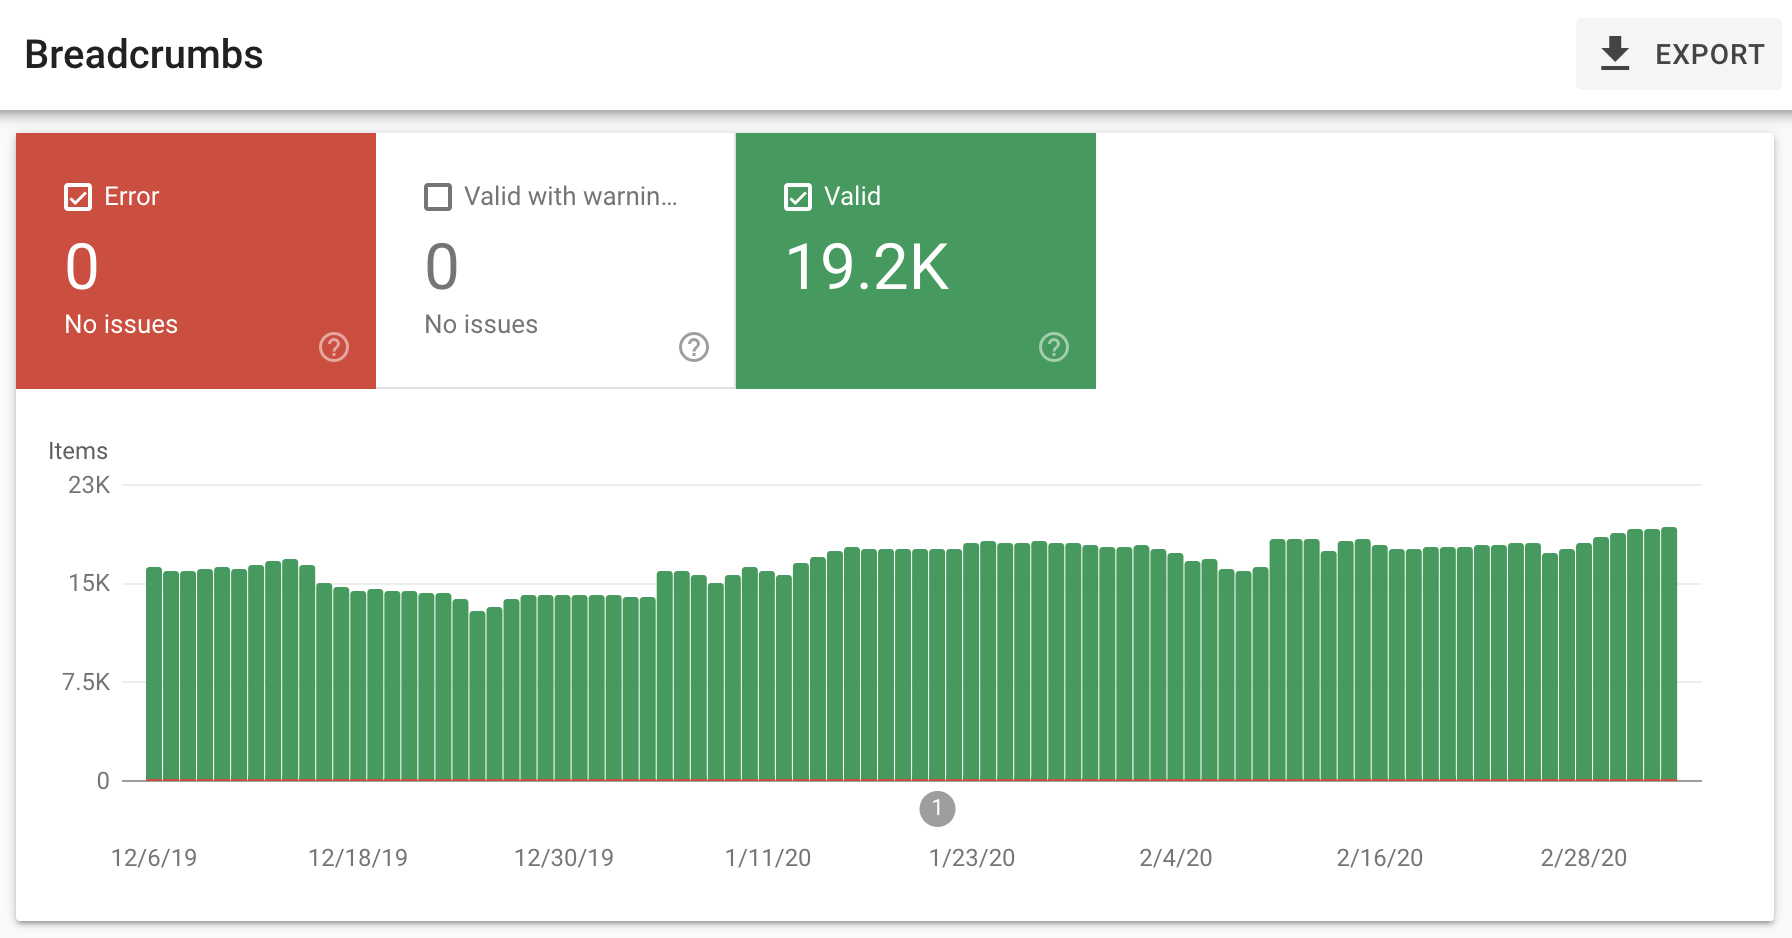 Breadcrumb structured data in Search Console